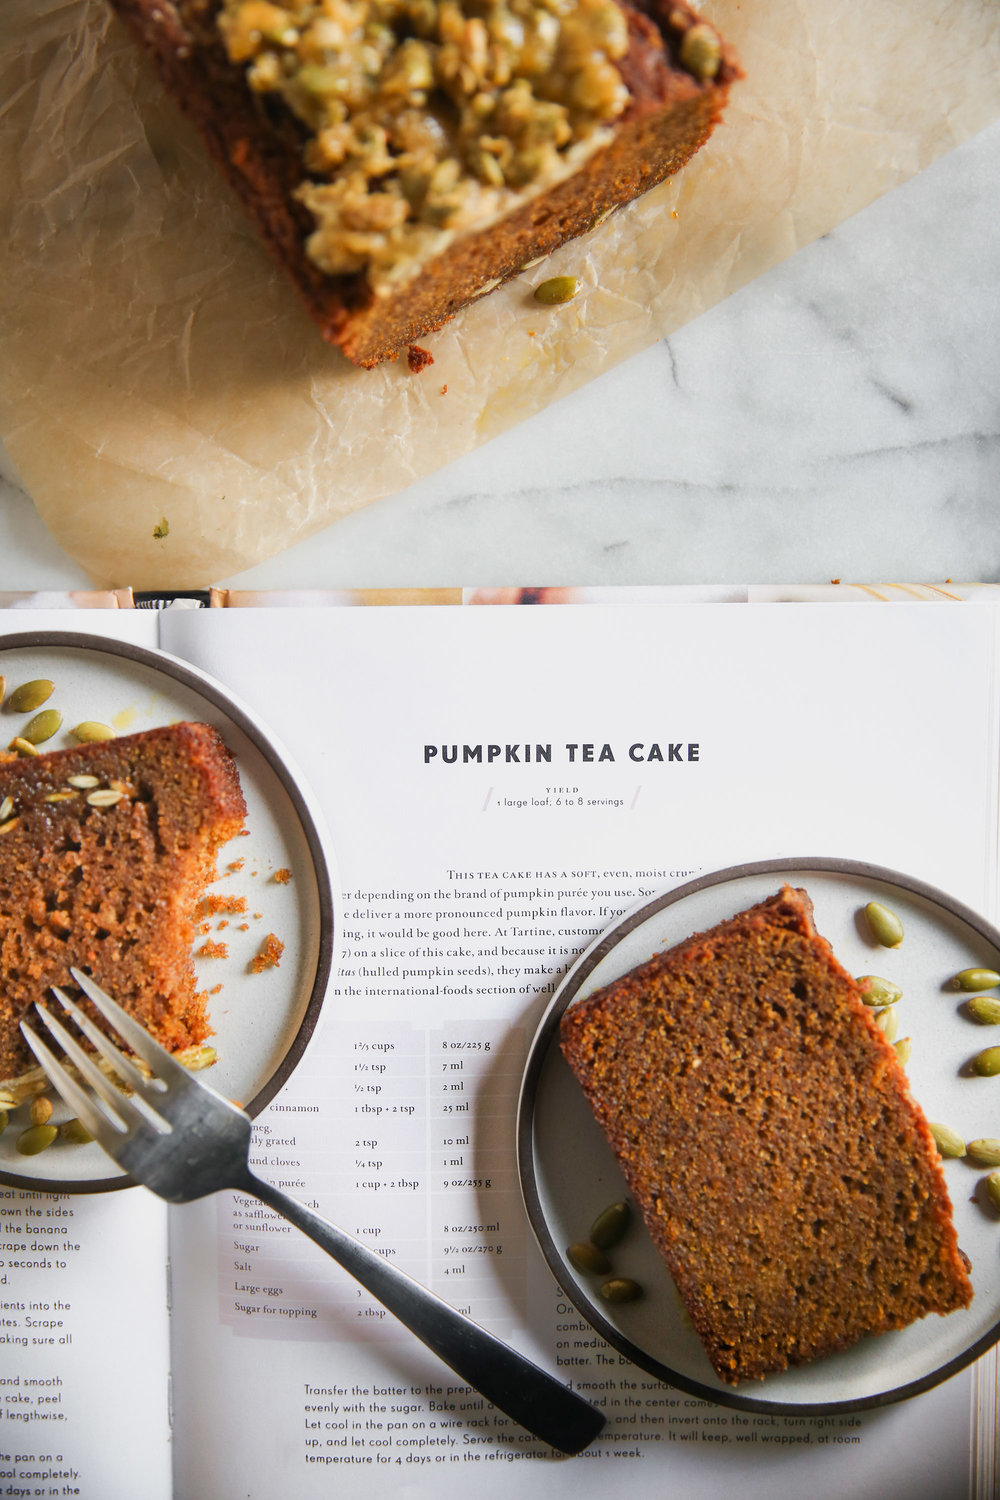 Tartine's Pumpkin Tea Cake Recipe